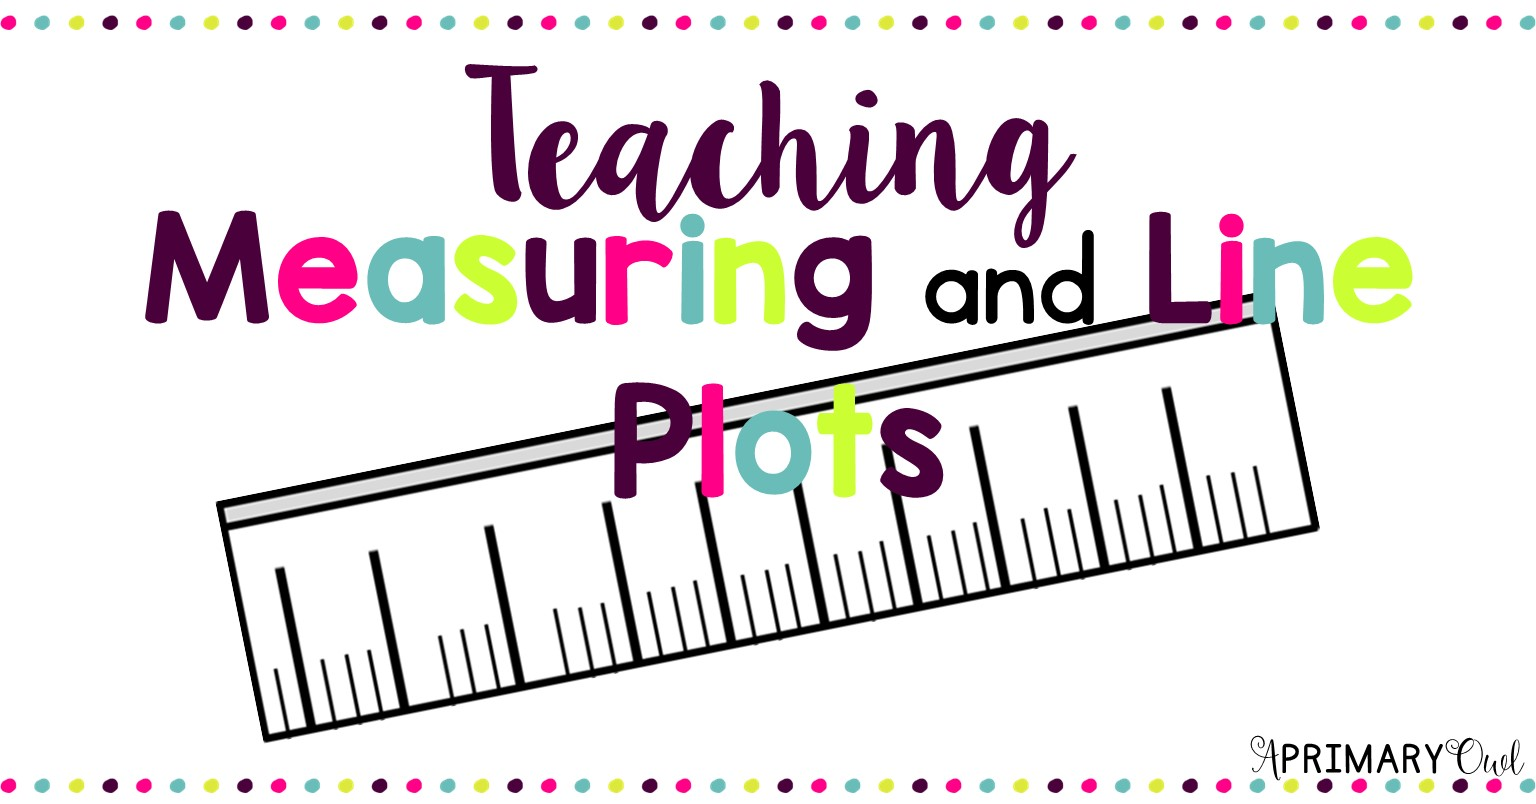 Teaching Measuring And Line Plots